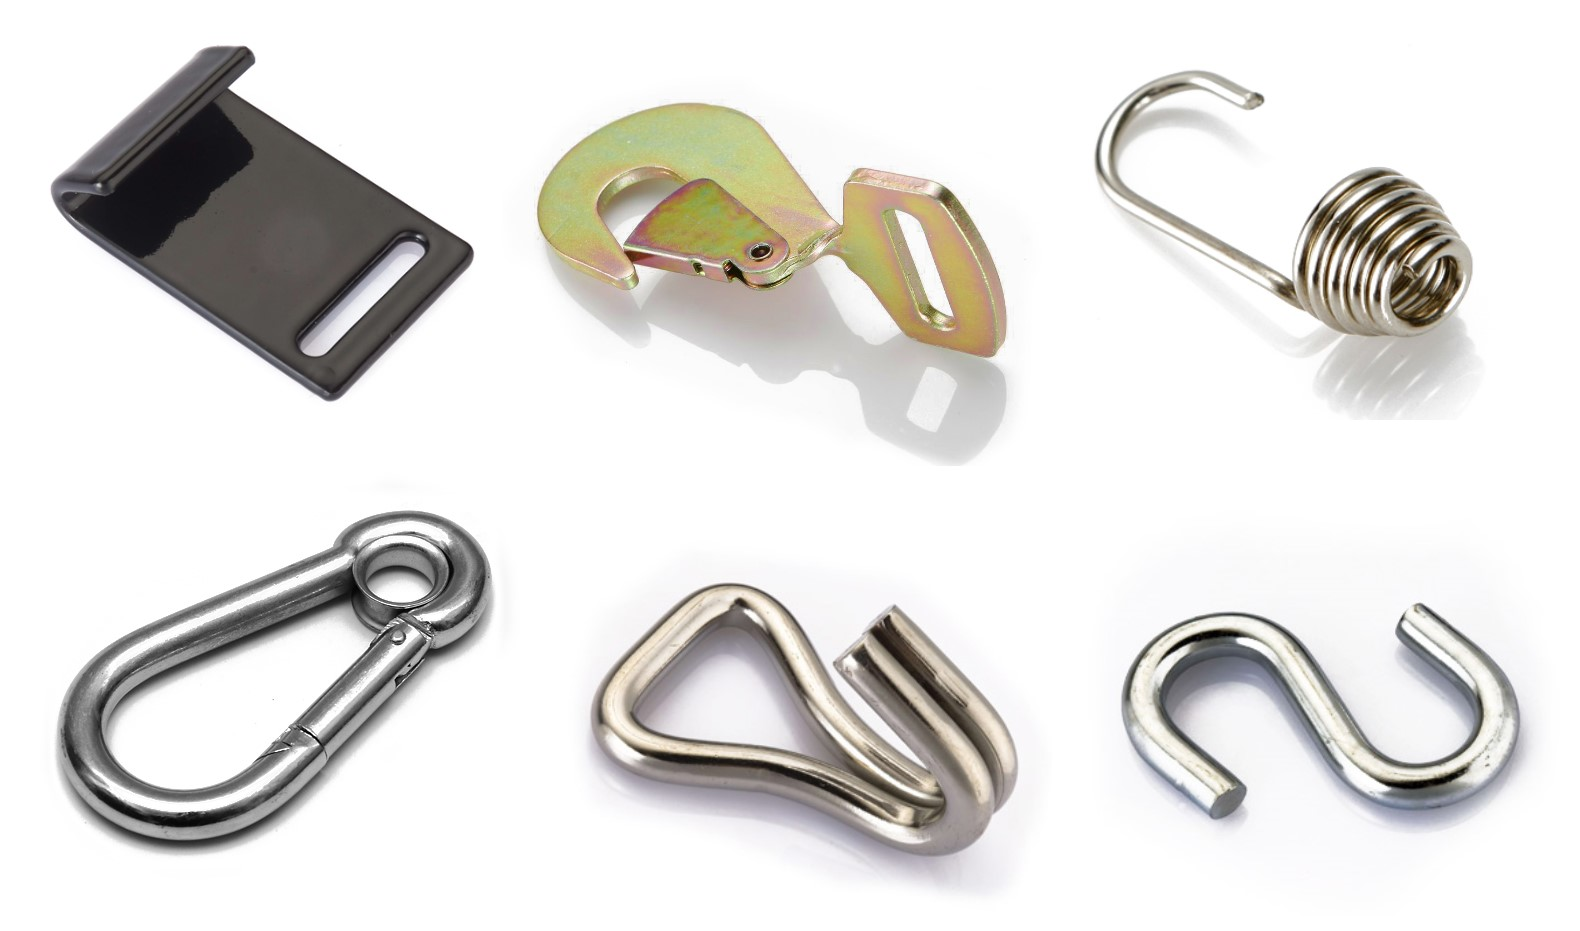 Agricultural / Tractor Hook for Auto Exterior Accessories made by Win Chance Metal Co., LTD. 鈞成金屬股份有限公司 - MatchSupplier.com